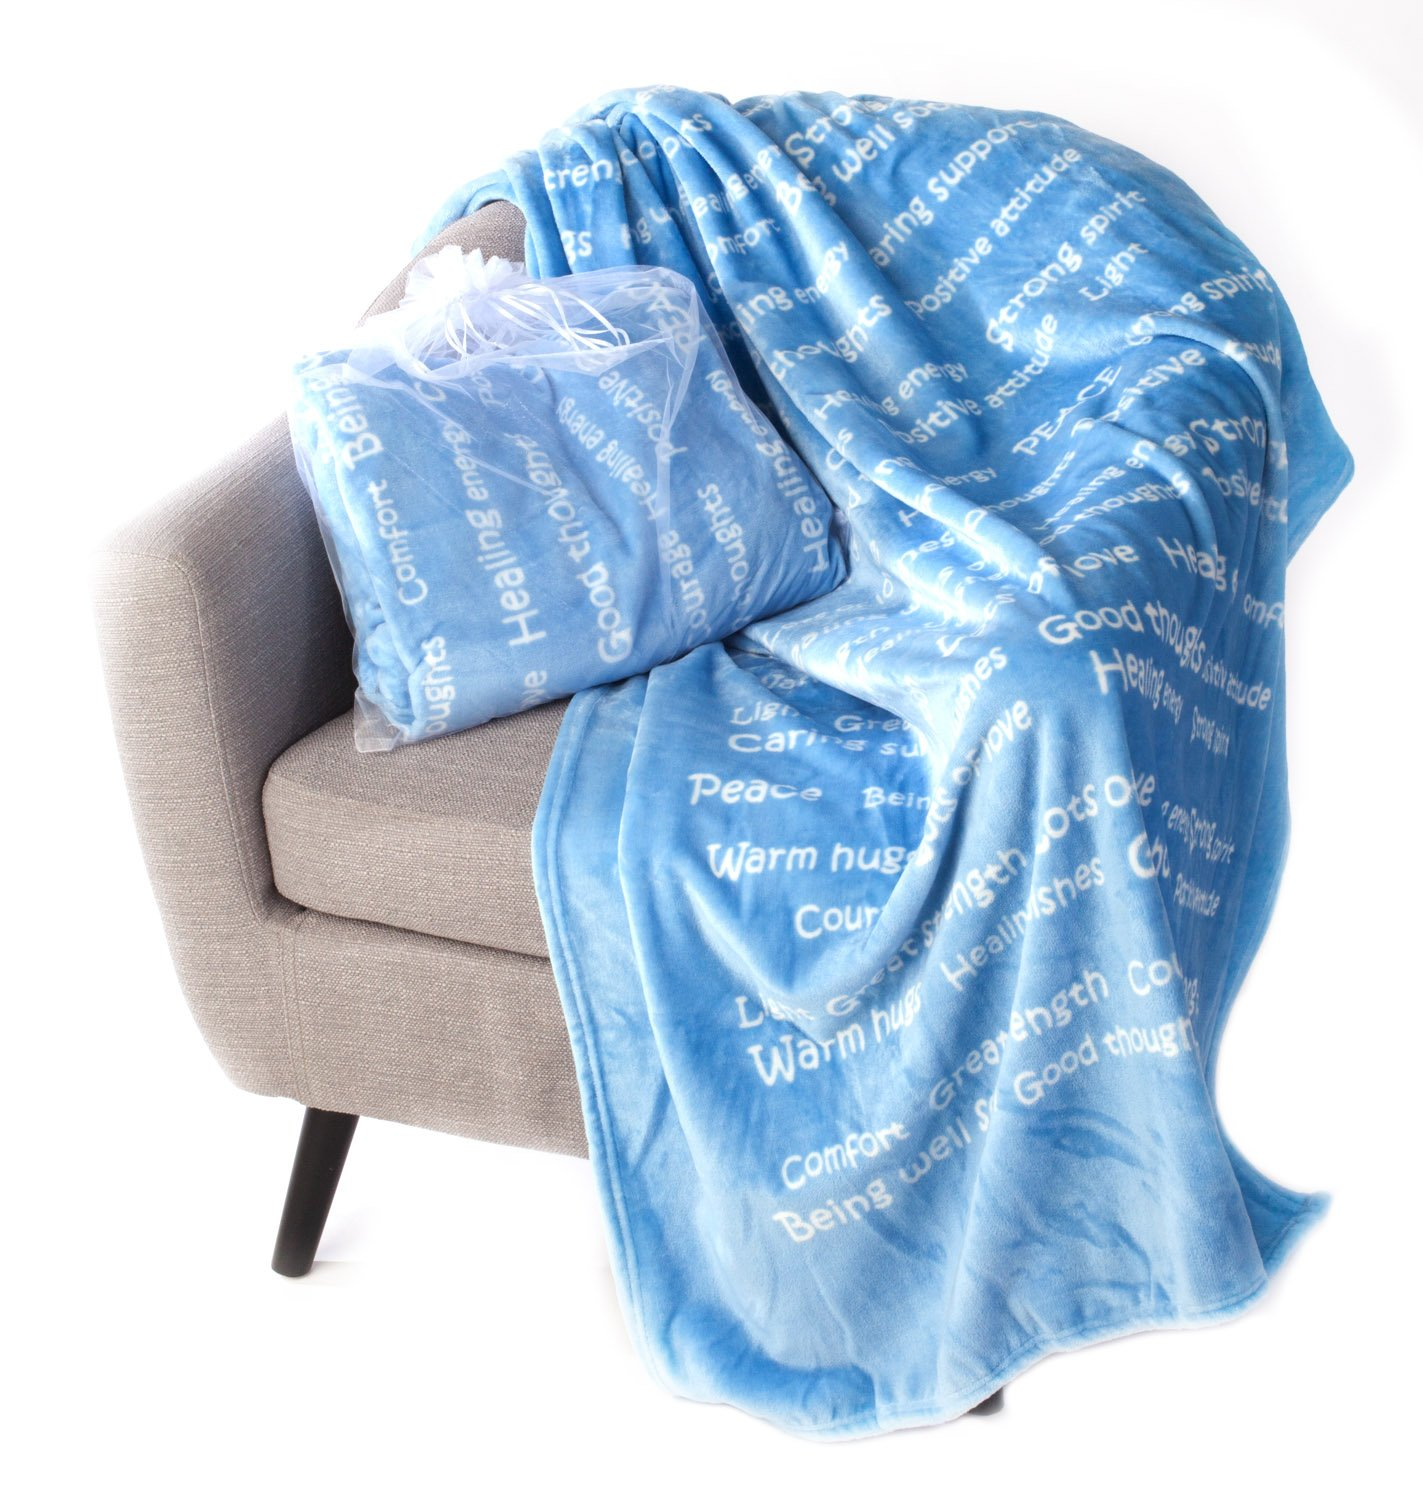 BlankieGram Healing Thoughts Blanket The Perfect Caring Gift (Blue)